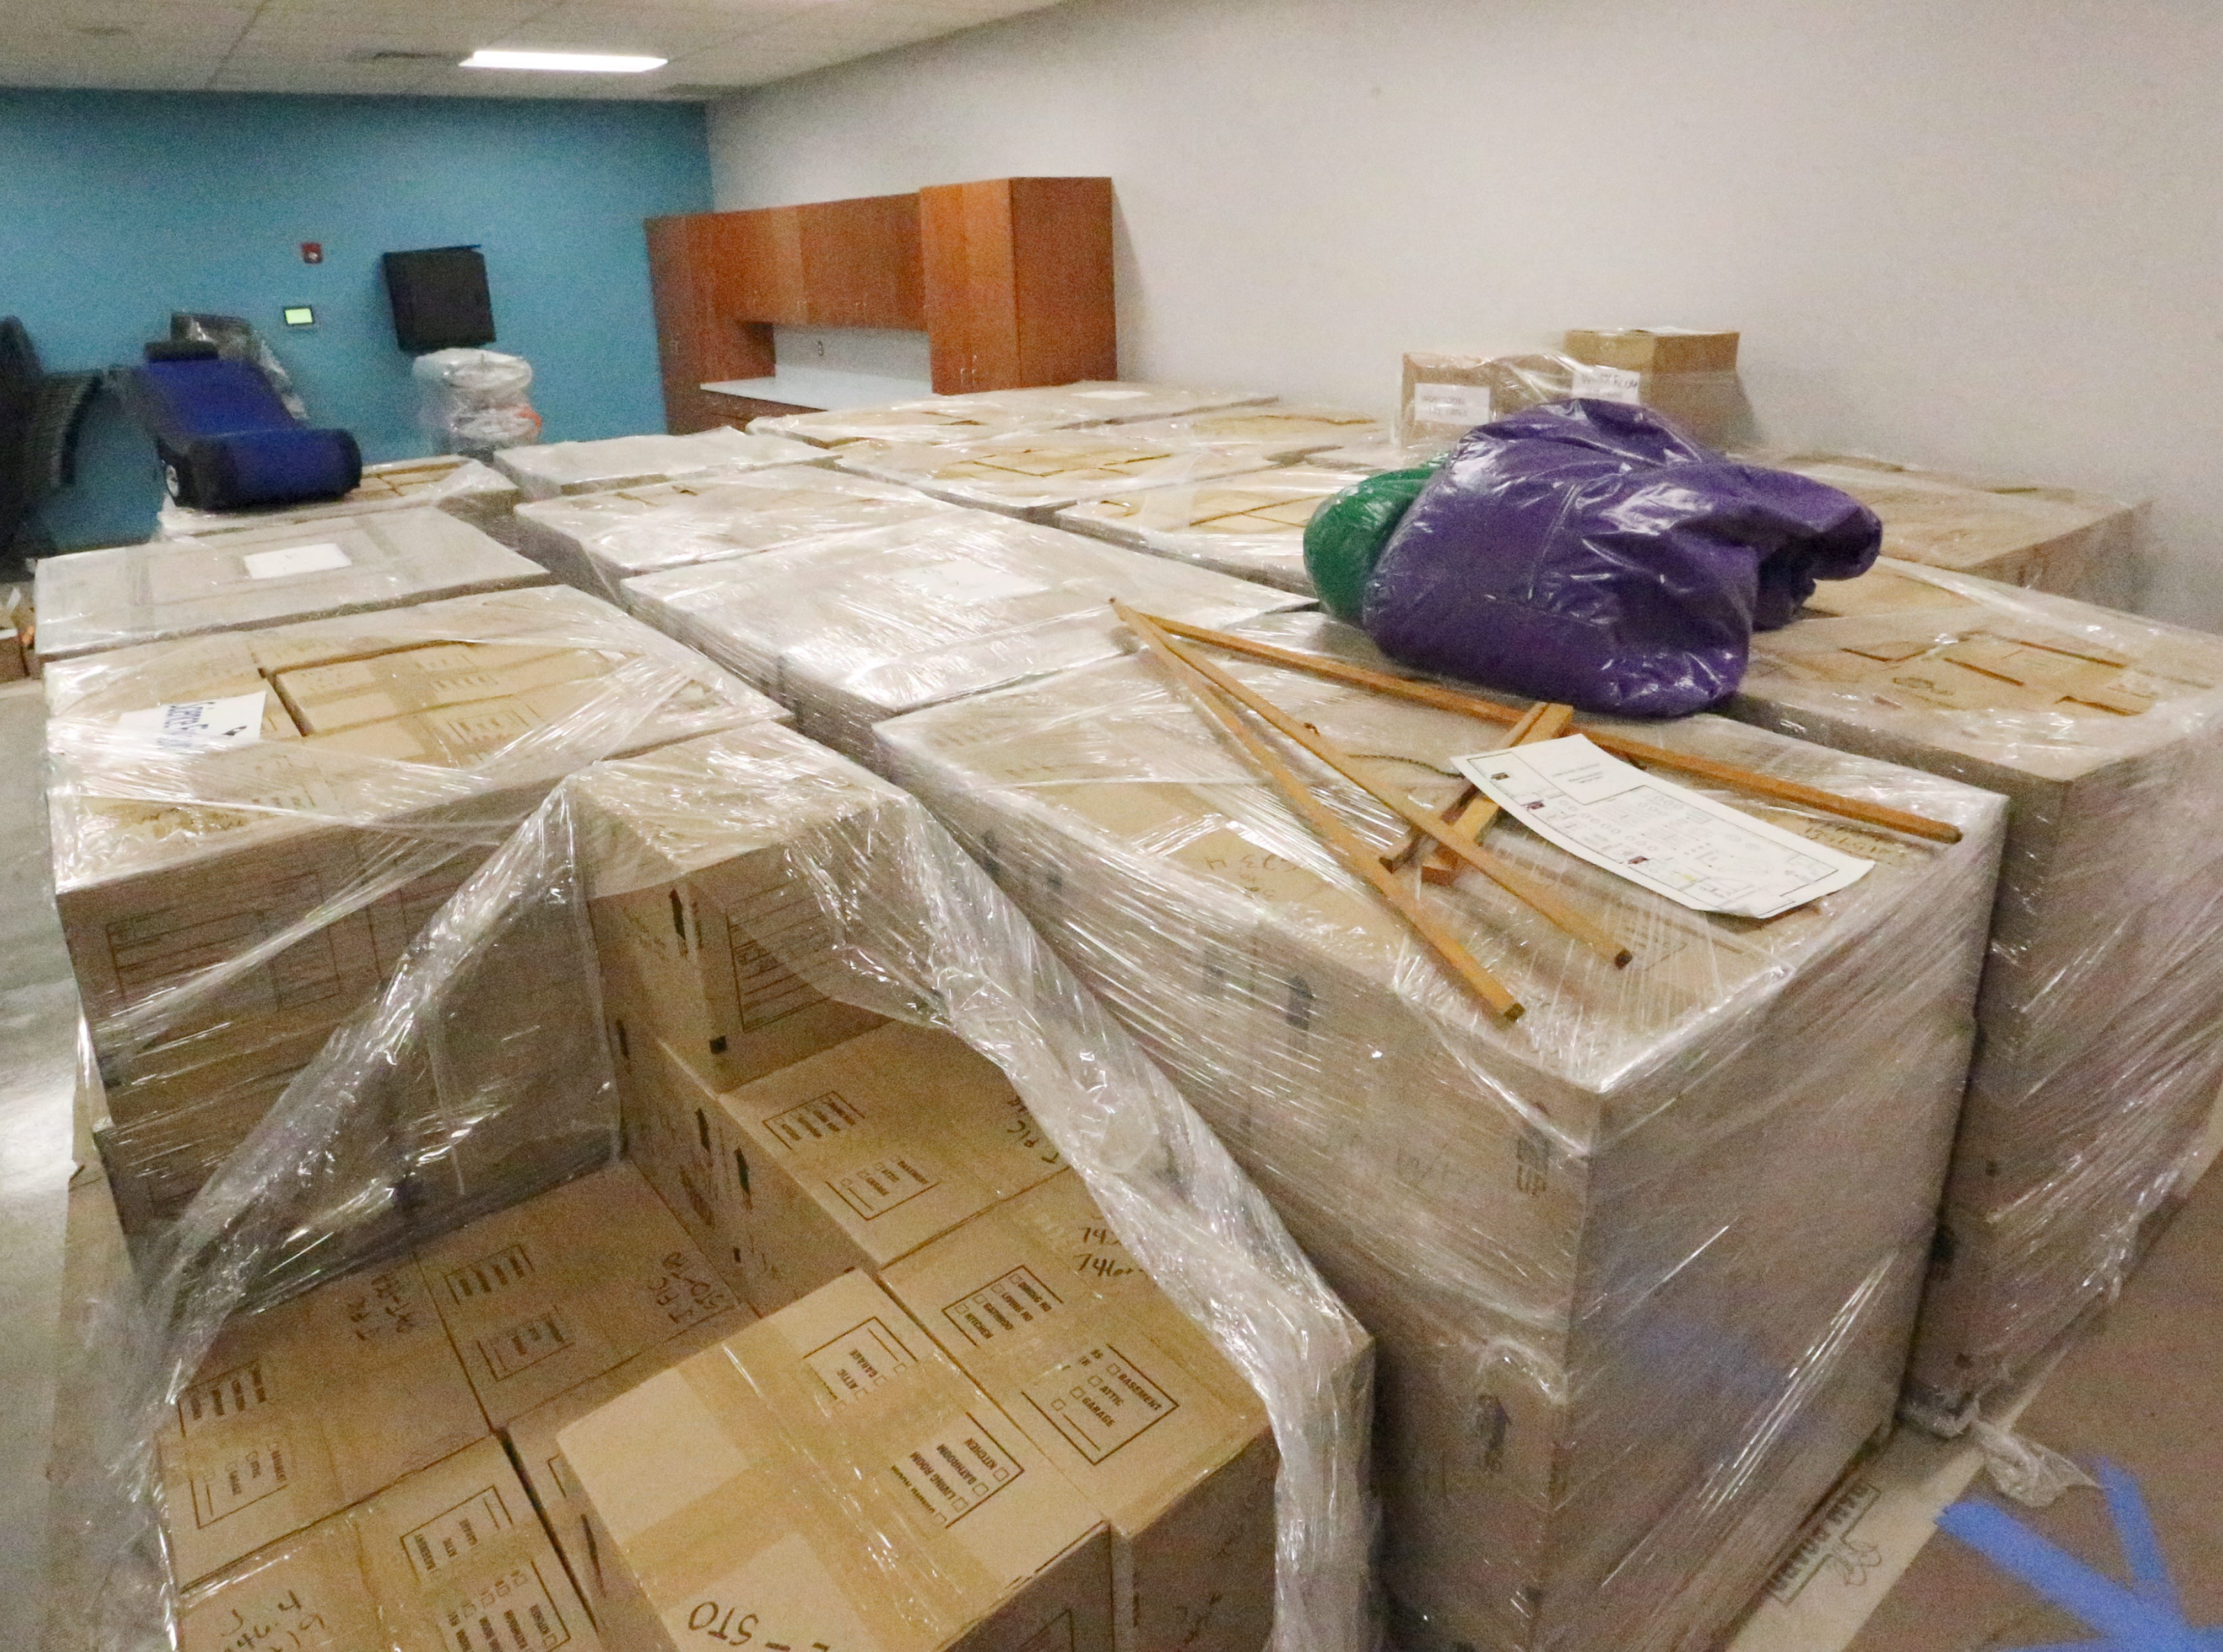 46 pallets full of boxes containing 72,000 books await inside the newly renovated Richard Burges Library.